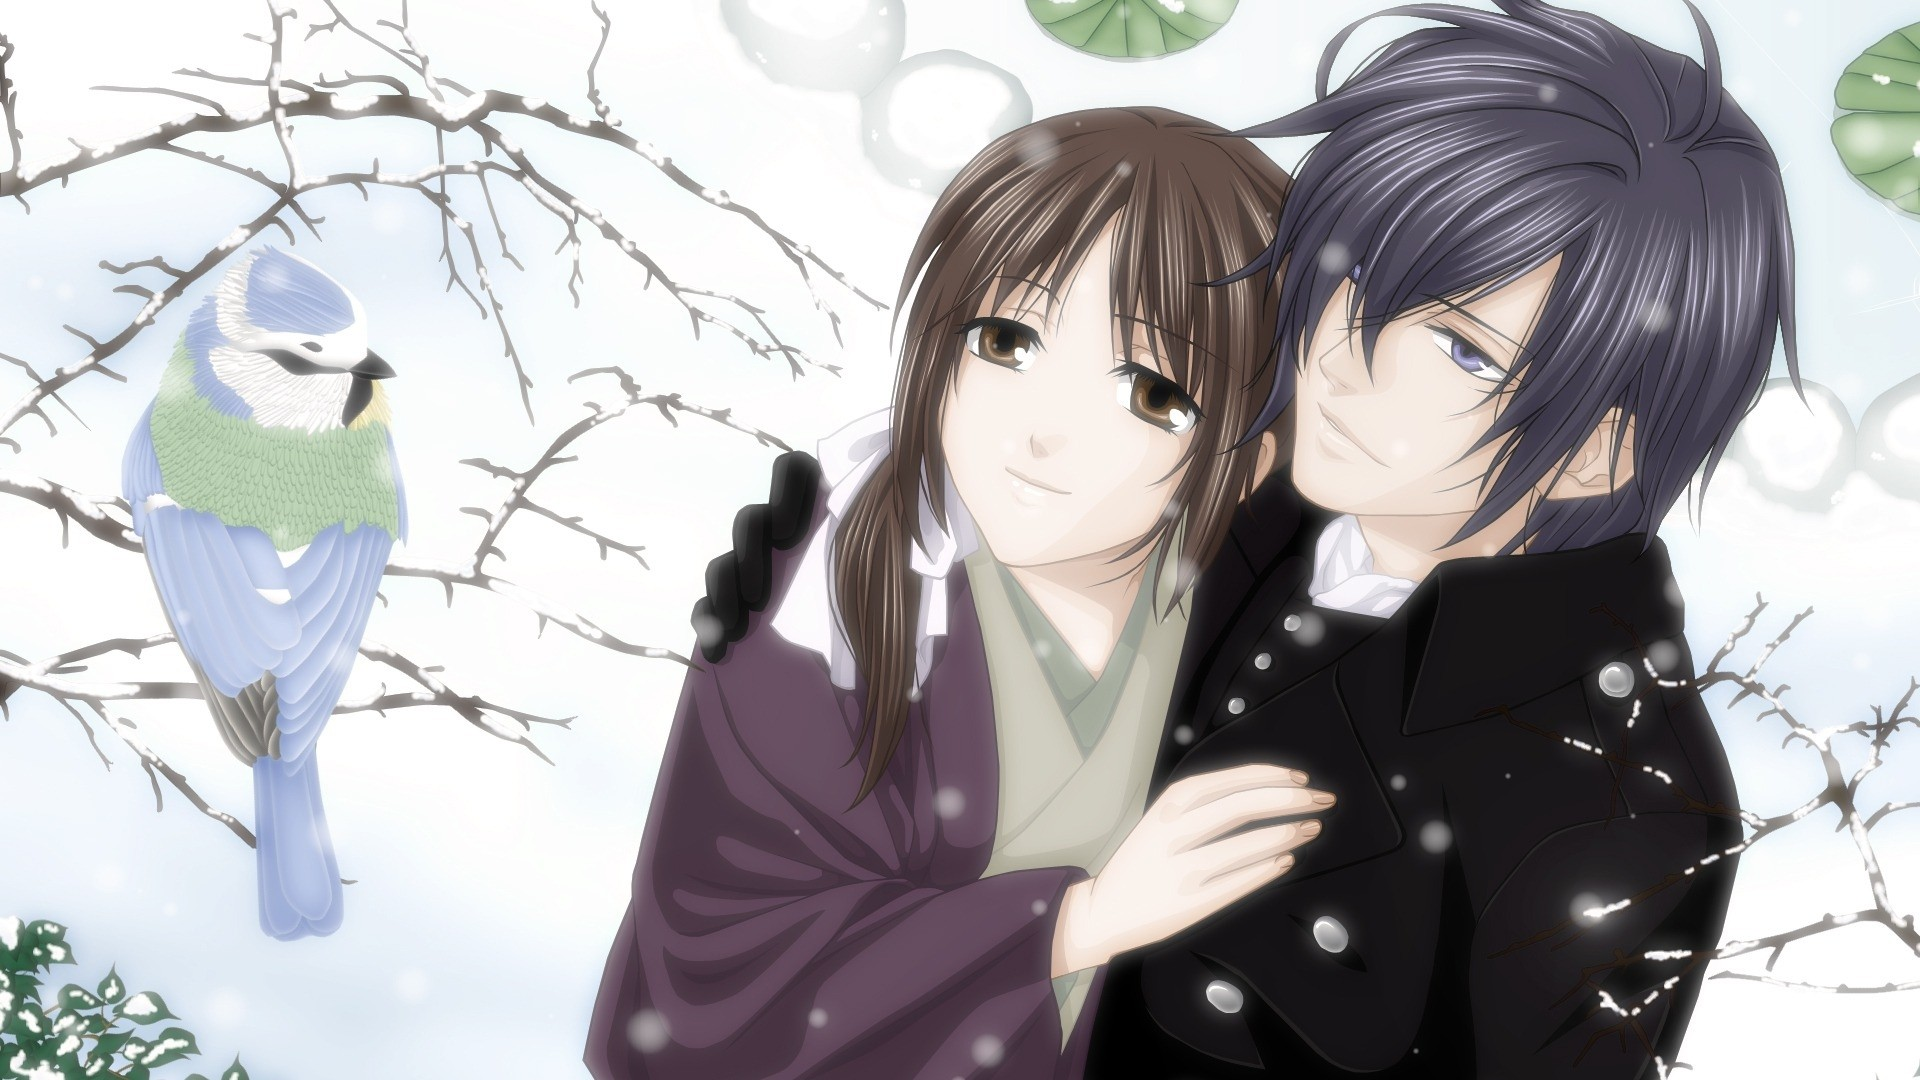 Res: 1920x1080, Download Anime HD Wallpapers Background Image hakuouki shinsengumi kitan  saito hajime anime winter bird chizuru yukimura